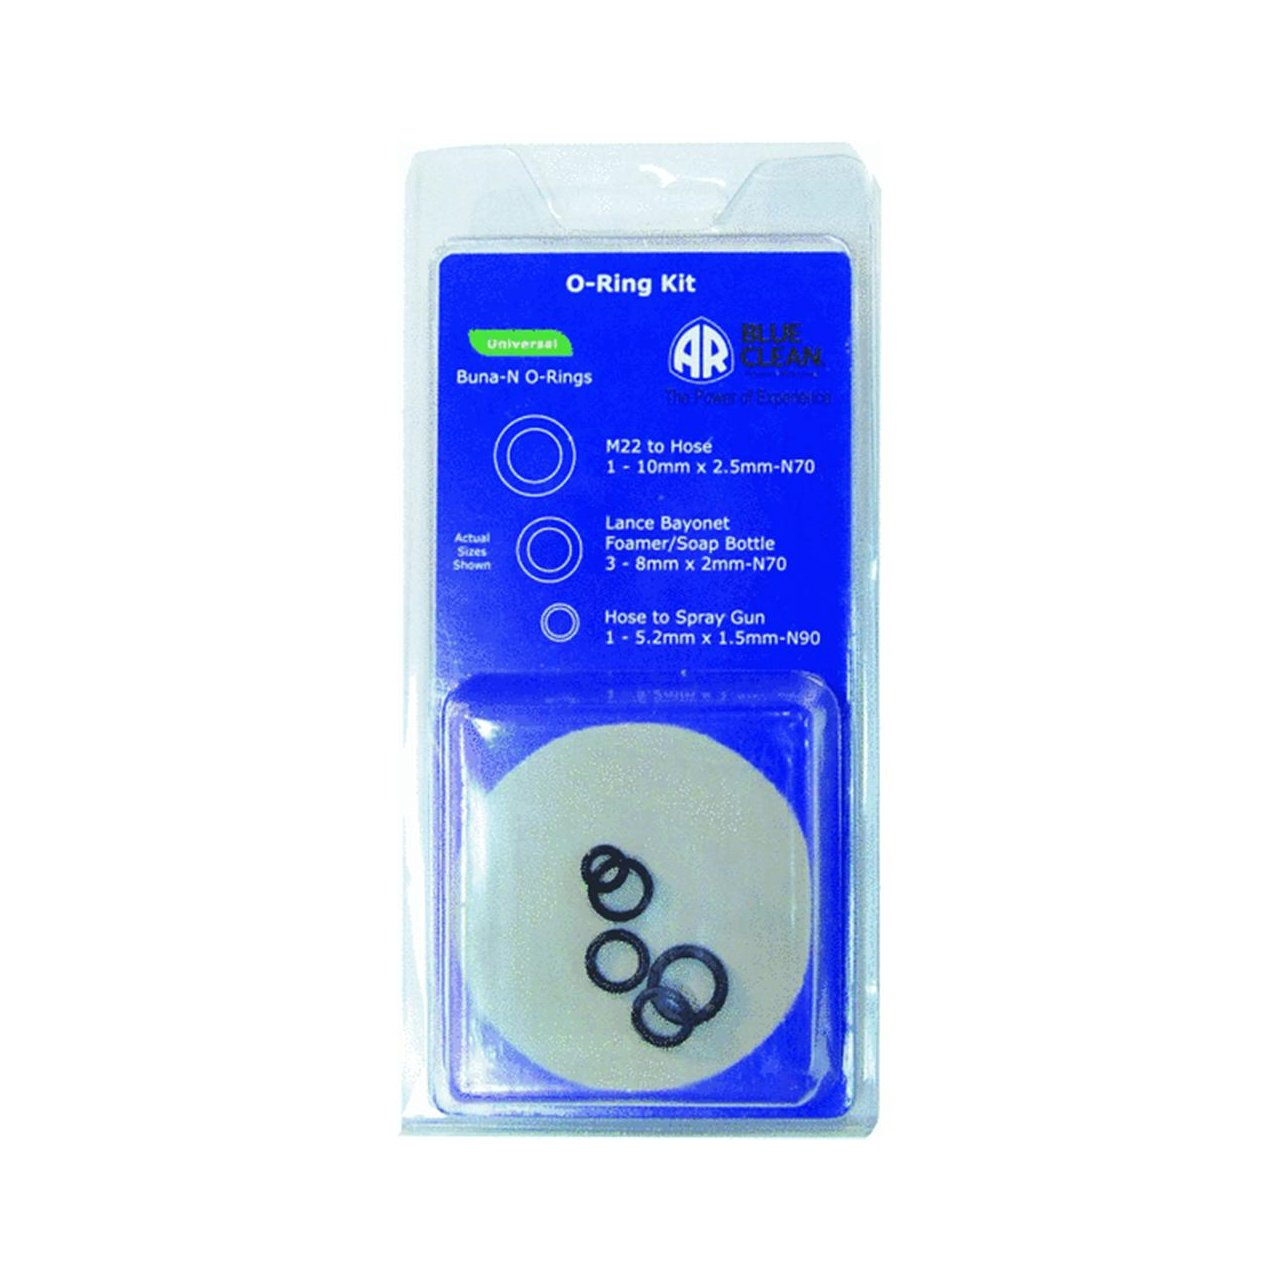 Amazon.com: Ar Blue Clean Power Washer O-Ring Kits: Home Improvement